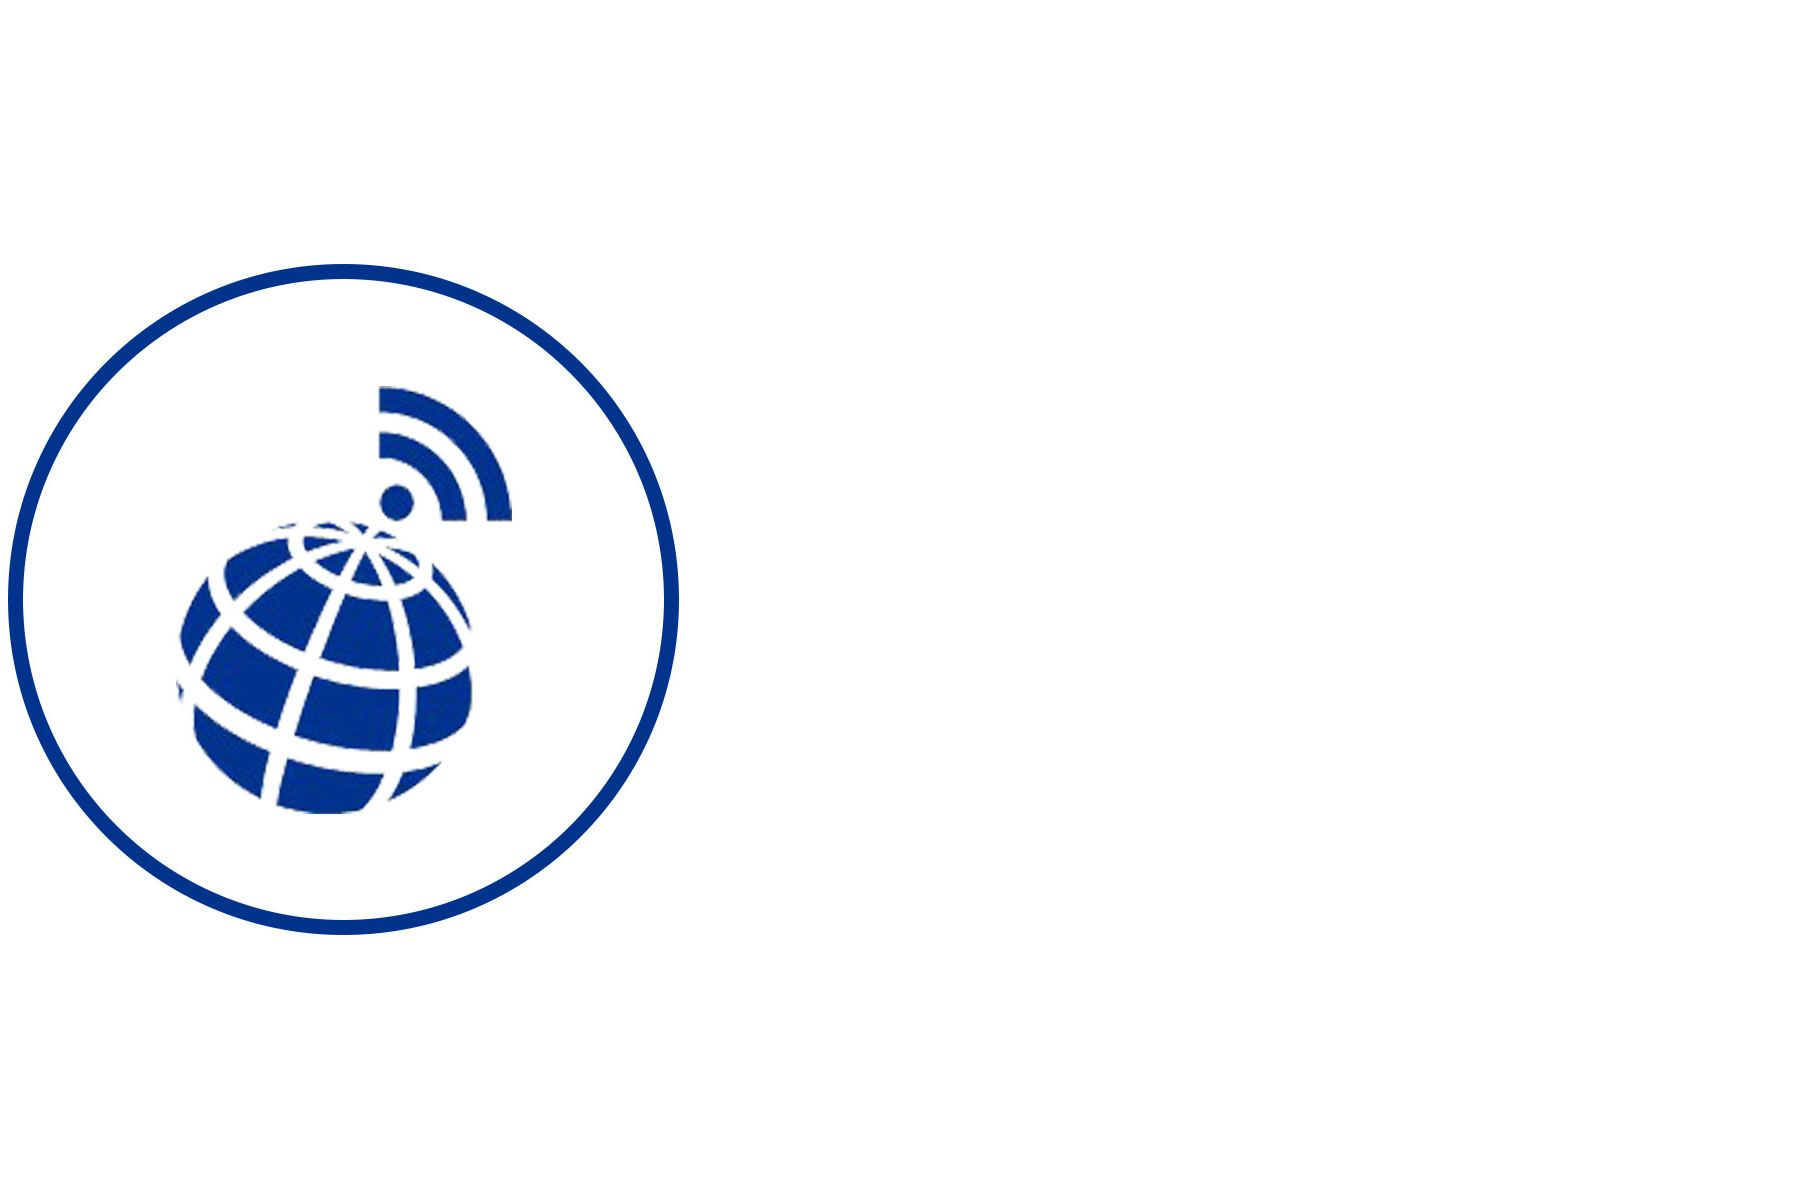 globally connected icon